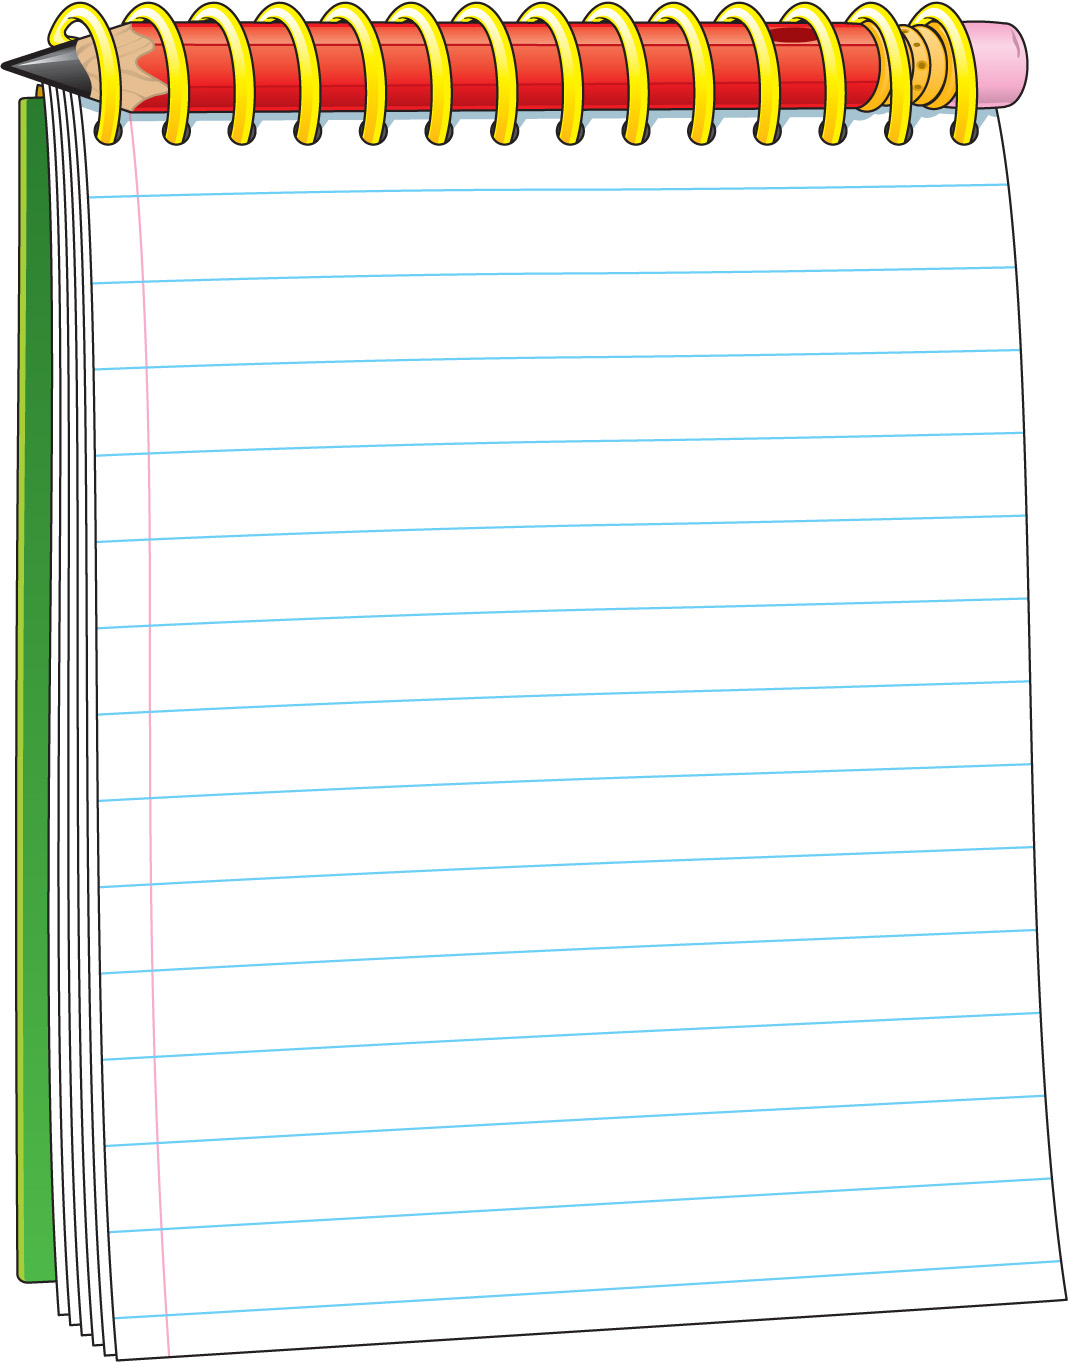 Notepad Transparent Clipart.